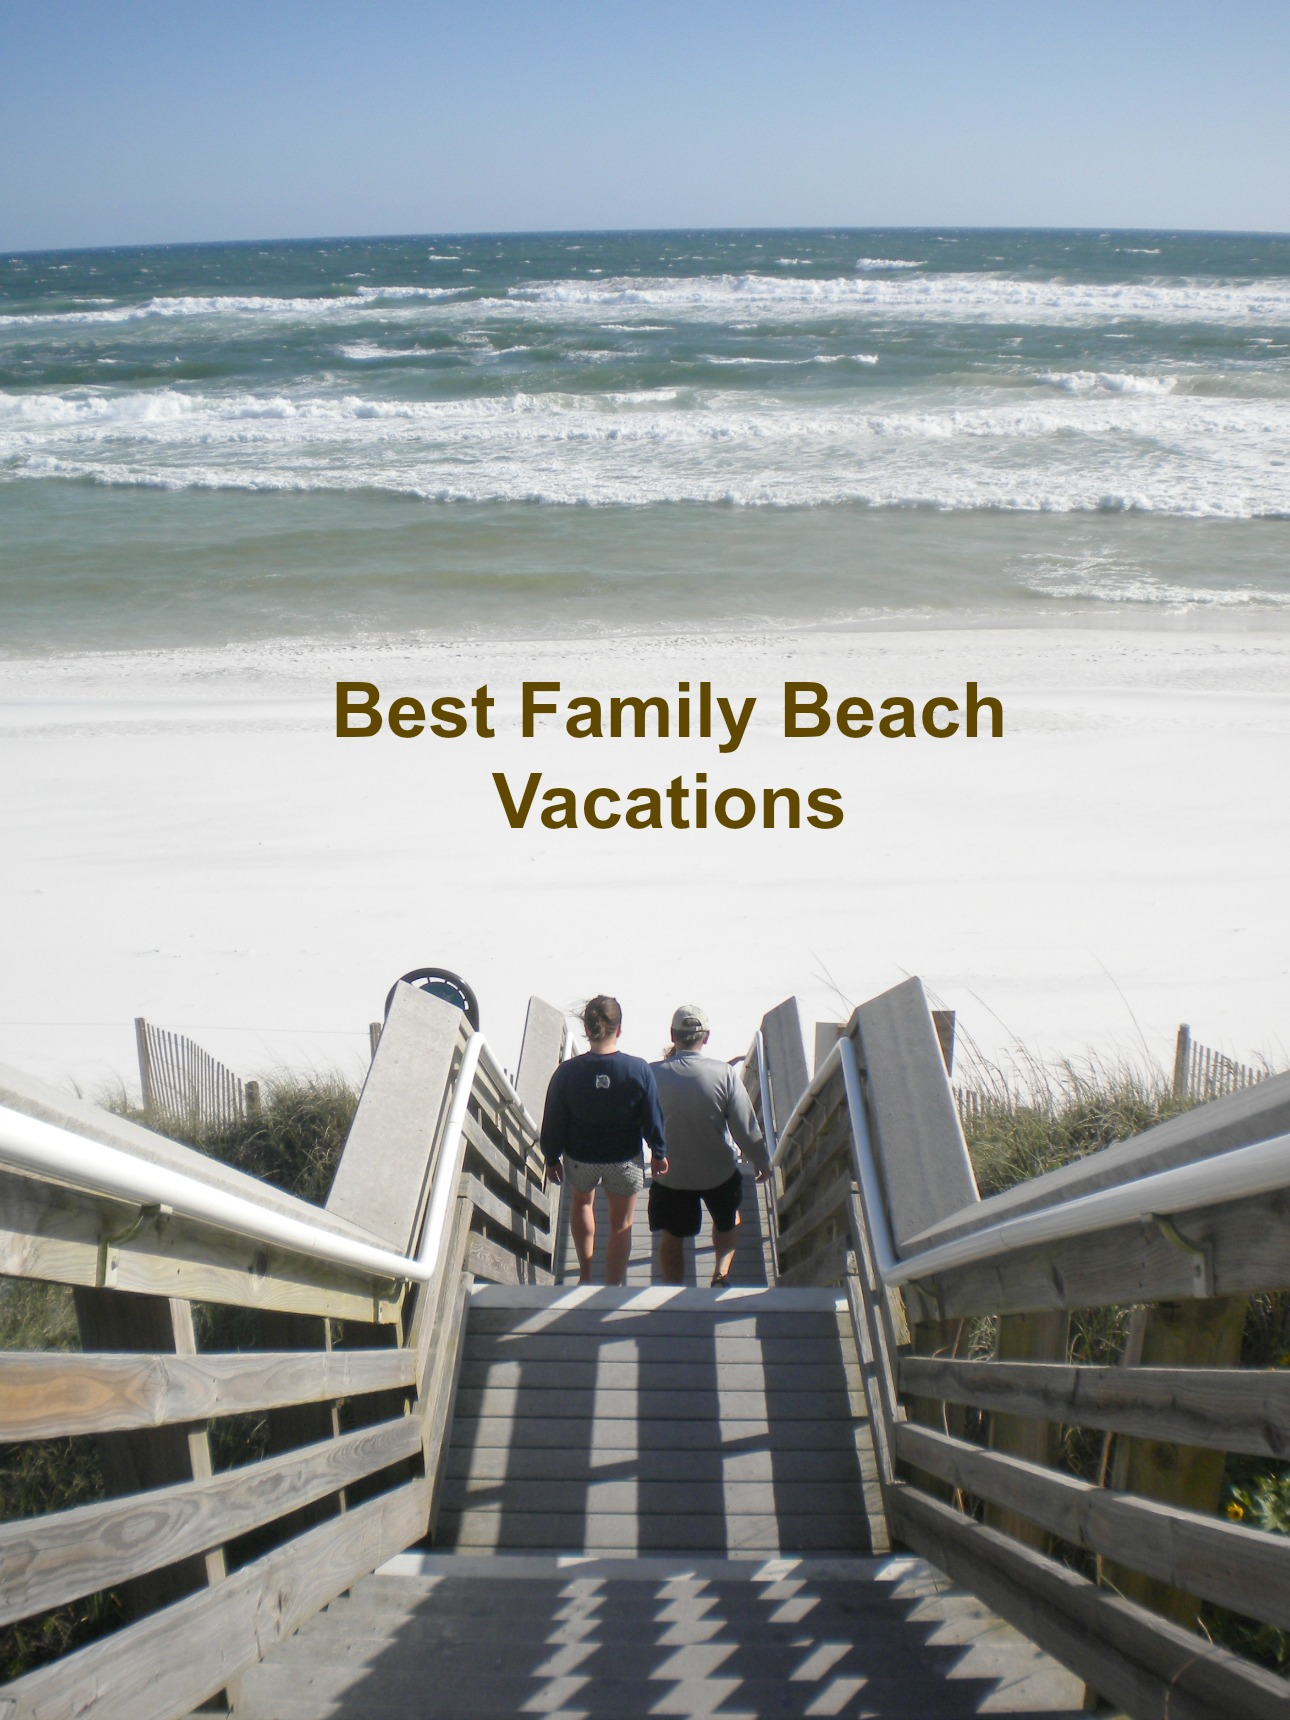 Best family beach vacations our family 39 s favorite beach for Best beach vacations usa